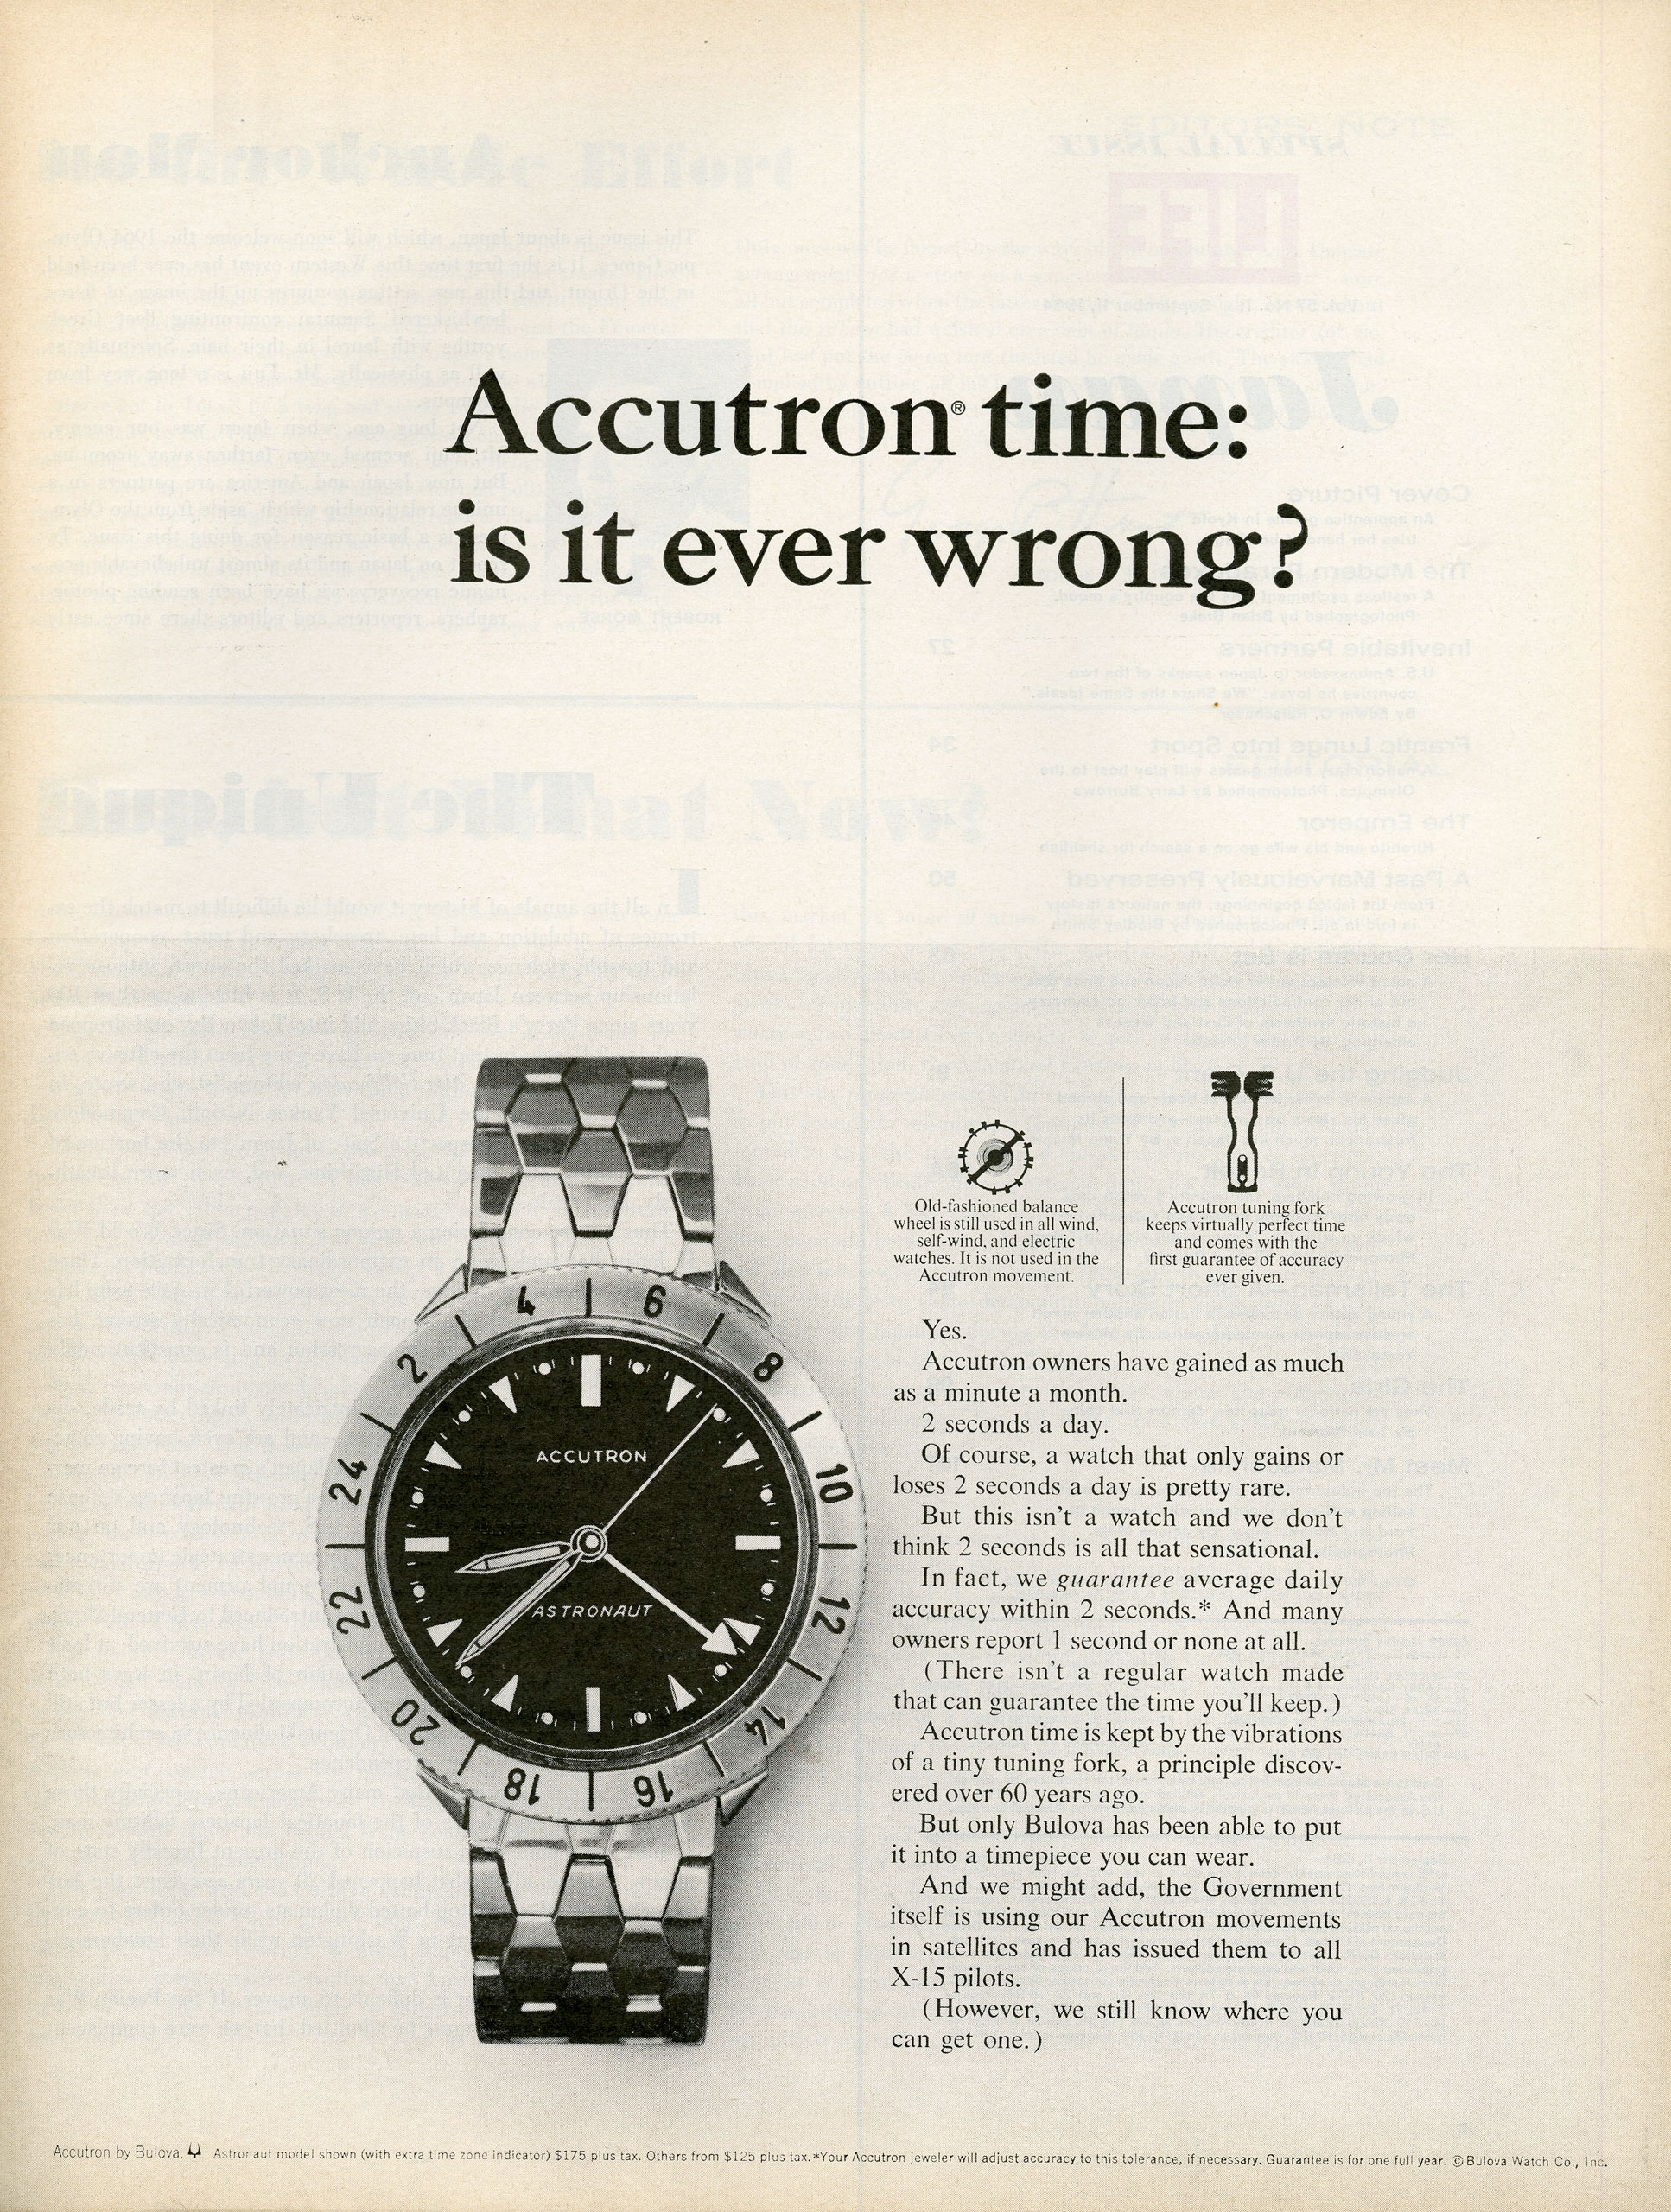 "<b>Accutron, September 11, 1964</b> In the first episode of Season 7, Don pitches Accutron, using Freddy Rumsen as a mouthpiece. His tagline: ""Accutron. It's not a timepiece. It's a conversation piece."" The pitch is meant to suggest that the watch makes its wearer interesting. This real Accutron ad from the mid-1960s favors simple design and a briefly stated plug for the watch's best feature: its accuracy. The copy describes the technology that elevates the watch to best-in-class for timekeeping, so sophisticated that even the government relies on it for satellites."